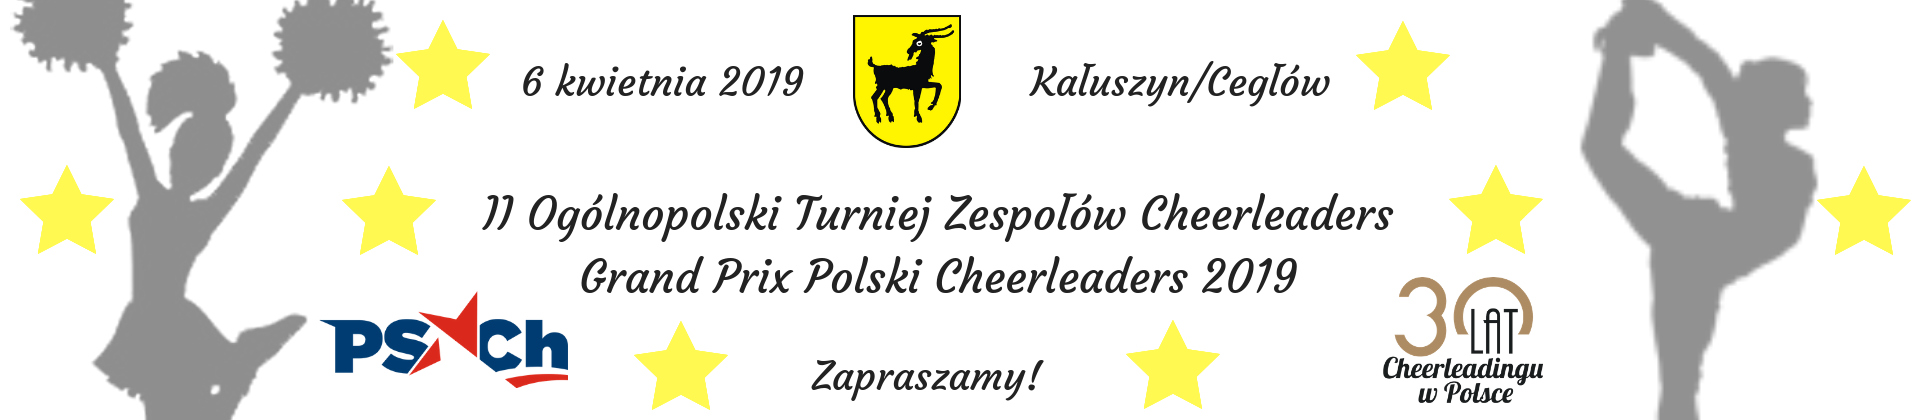 Grand Prix Polski Cheerleaders 2018